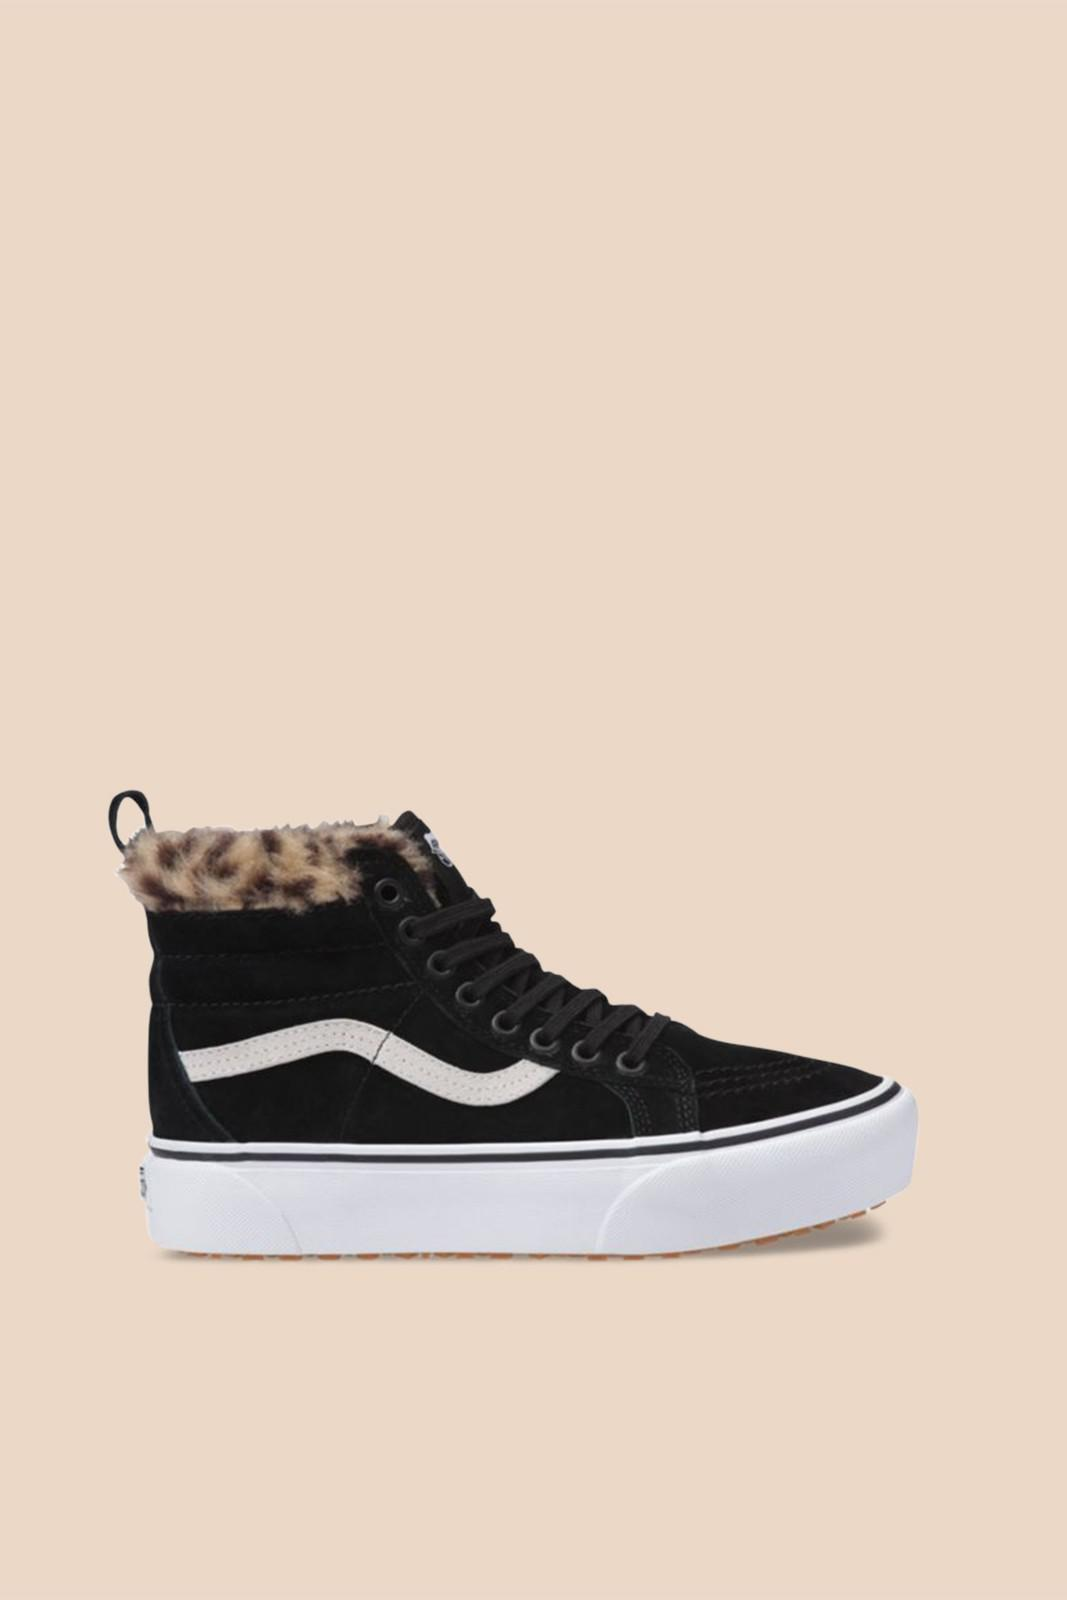 e757c2ab4d9 Lyst - Vans Sk8-hi Platform Mte Black Sneakers in Black - Save 6%